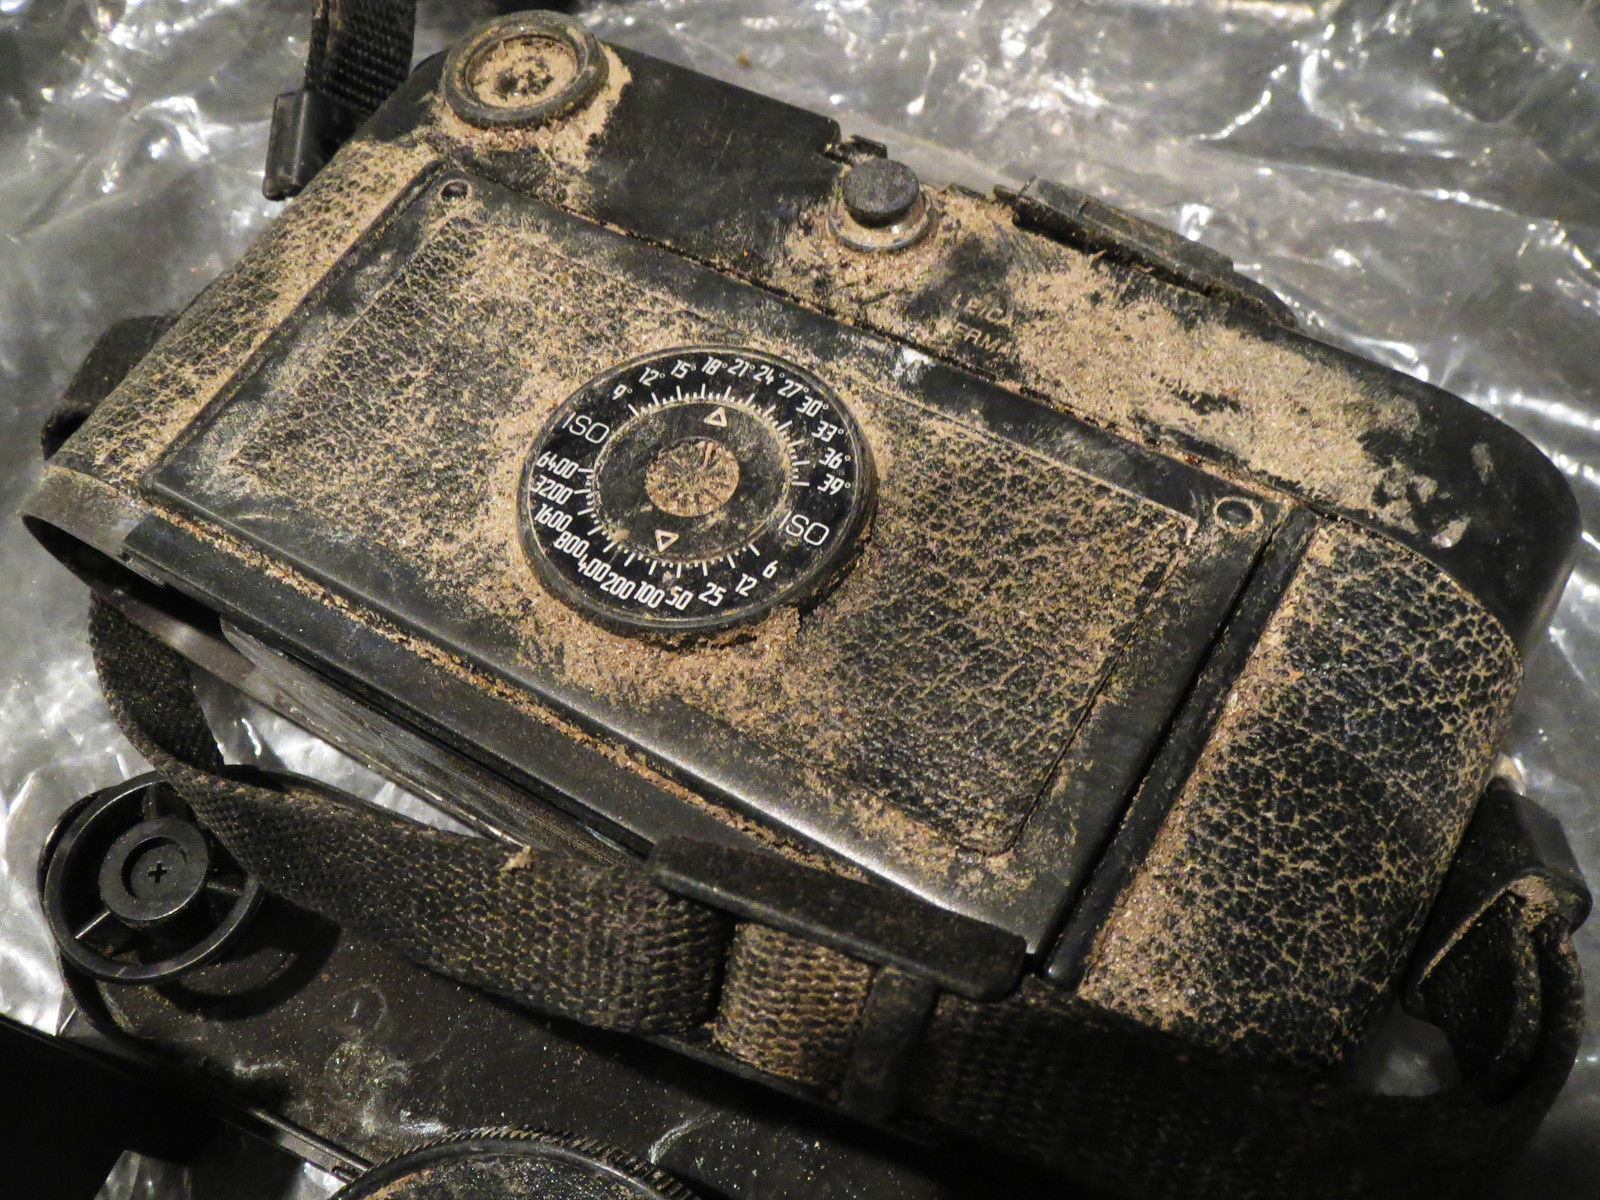 Leica M6 Black Camera Body – Hapless Victim of Hurricane Sandy